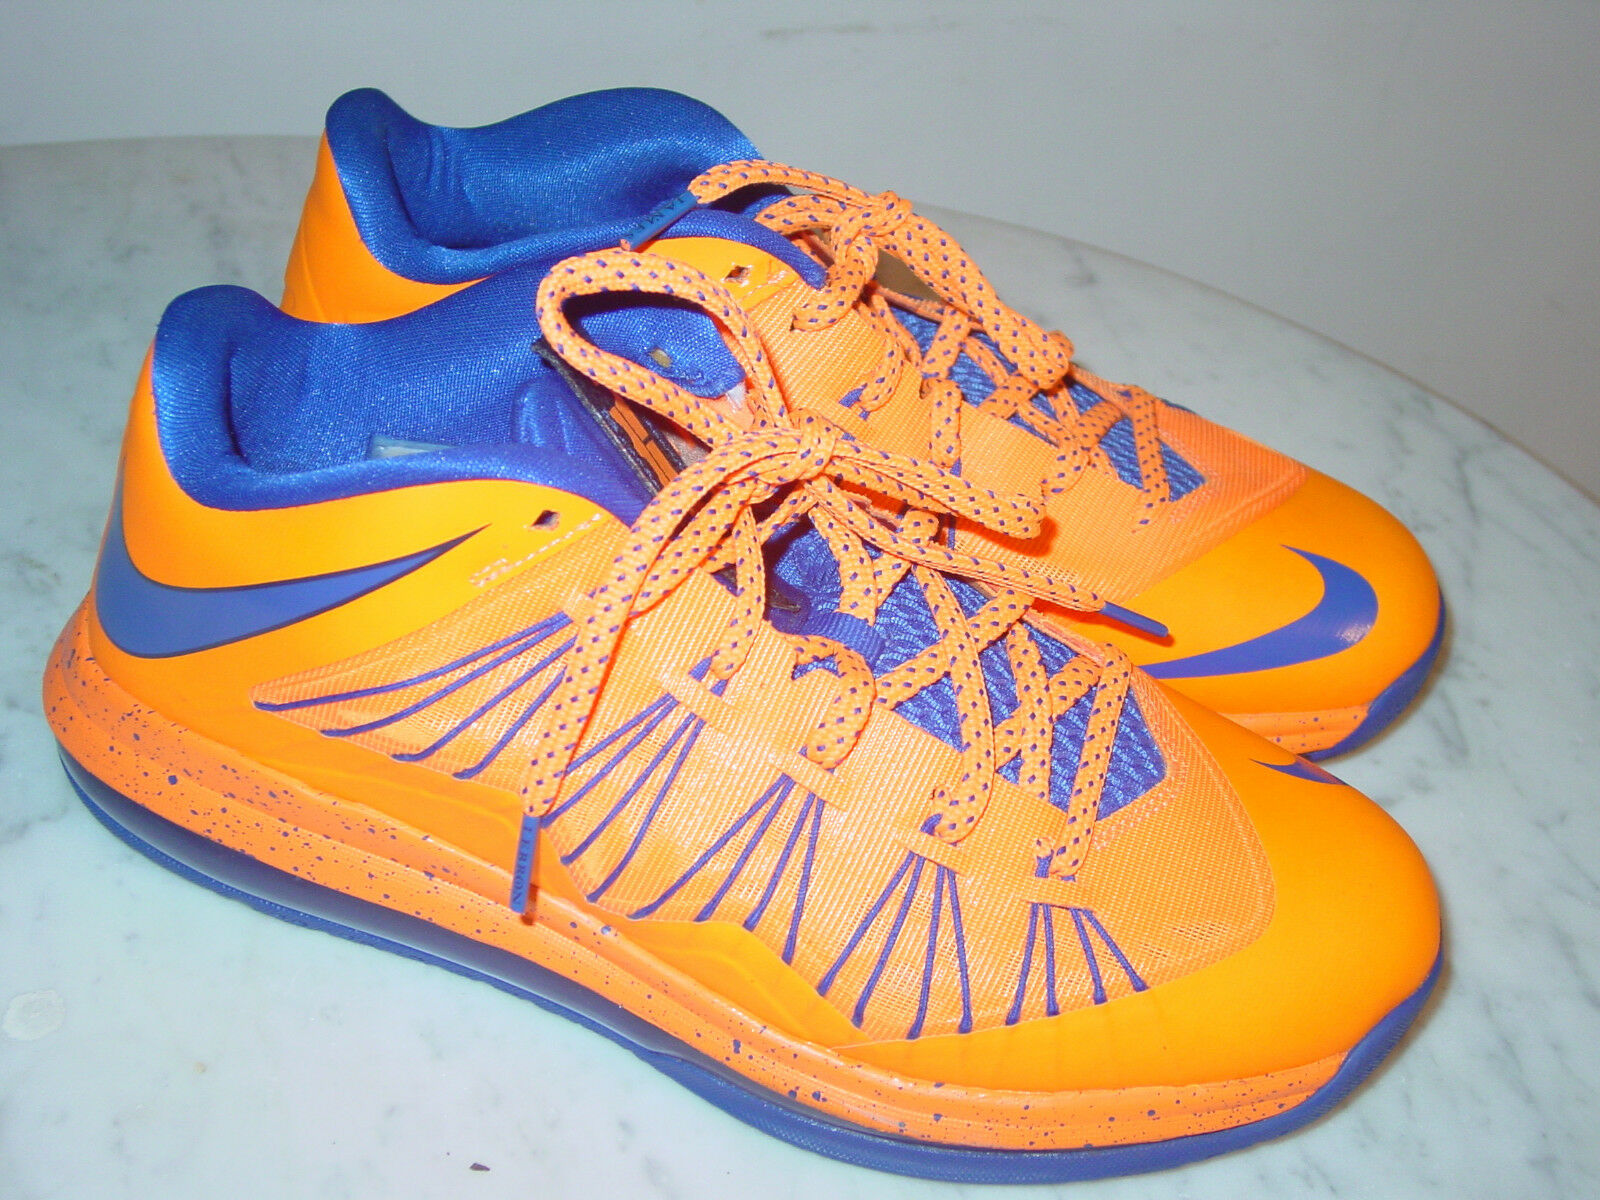 2012 Nike Lebron X Bright Citrus Hyper bluee Blackened bluee Low shoes  Size 9.5